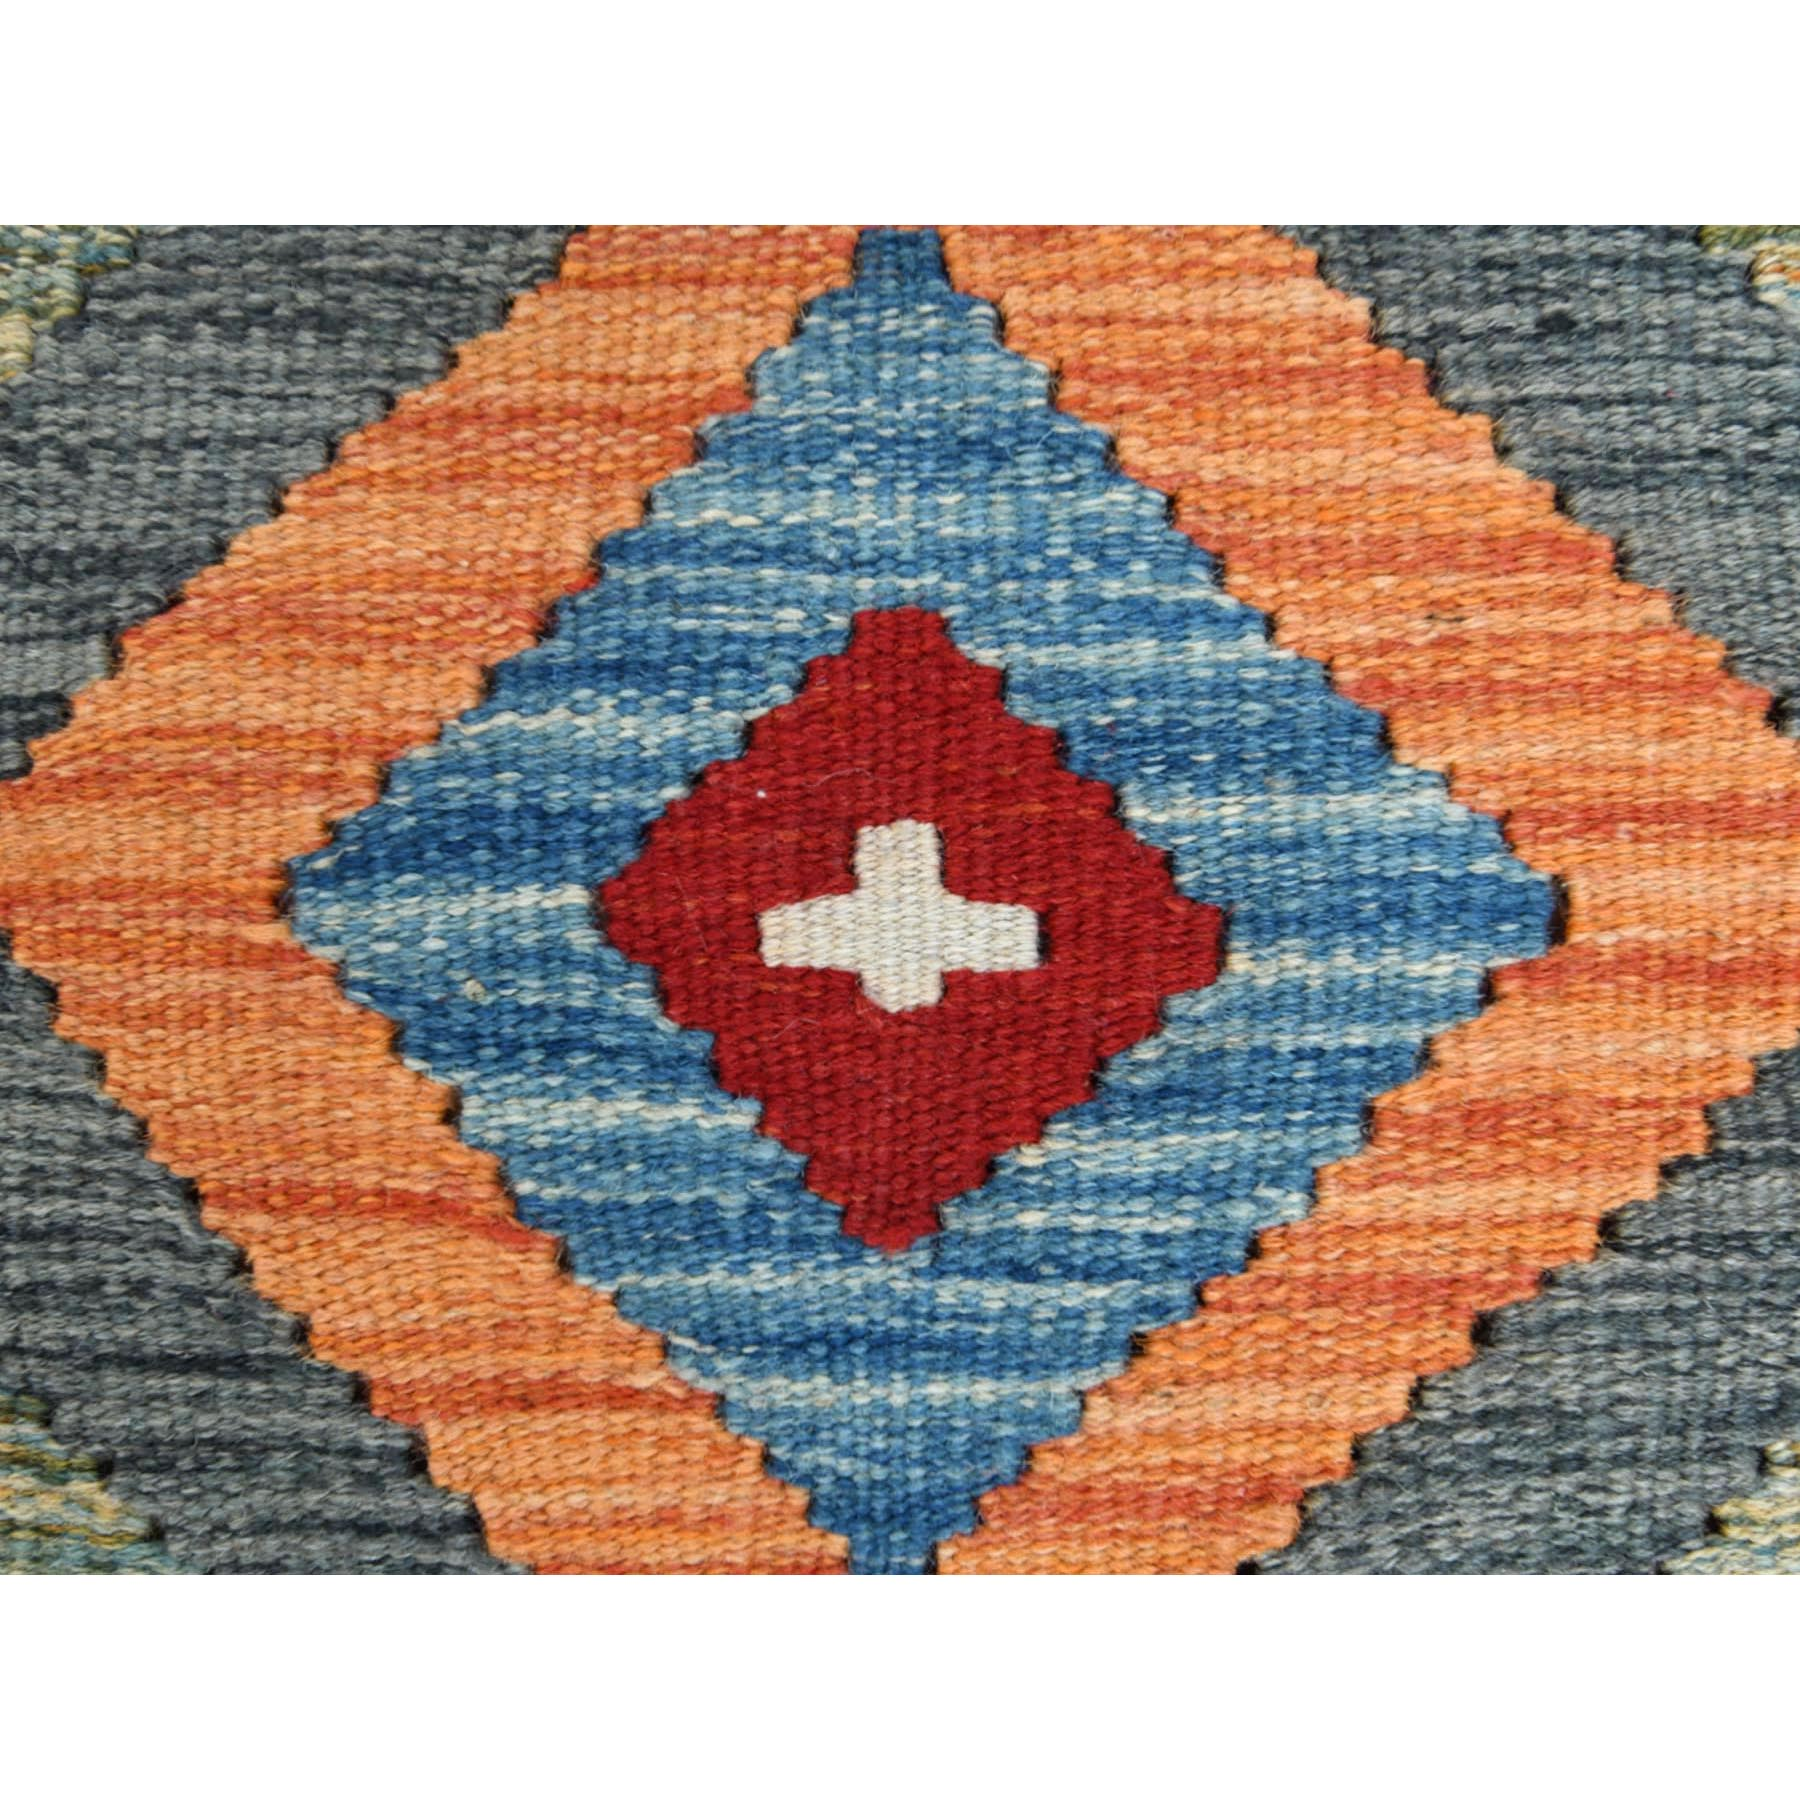 """2'3""""x6'3"""" Colorful Afghan Kilim In A Colorful Palette Geometric Design Glimmery Wool Hand Woven Oriental Runner Reversible Rug"""